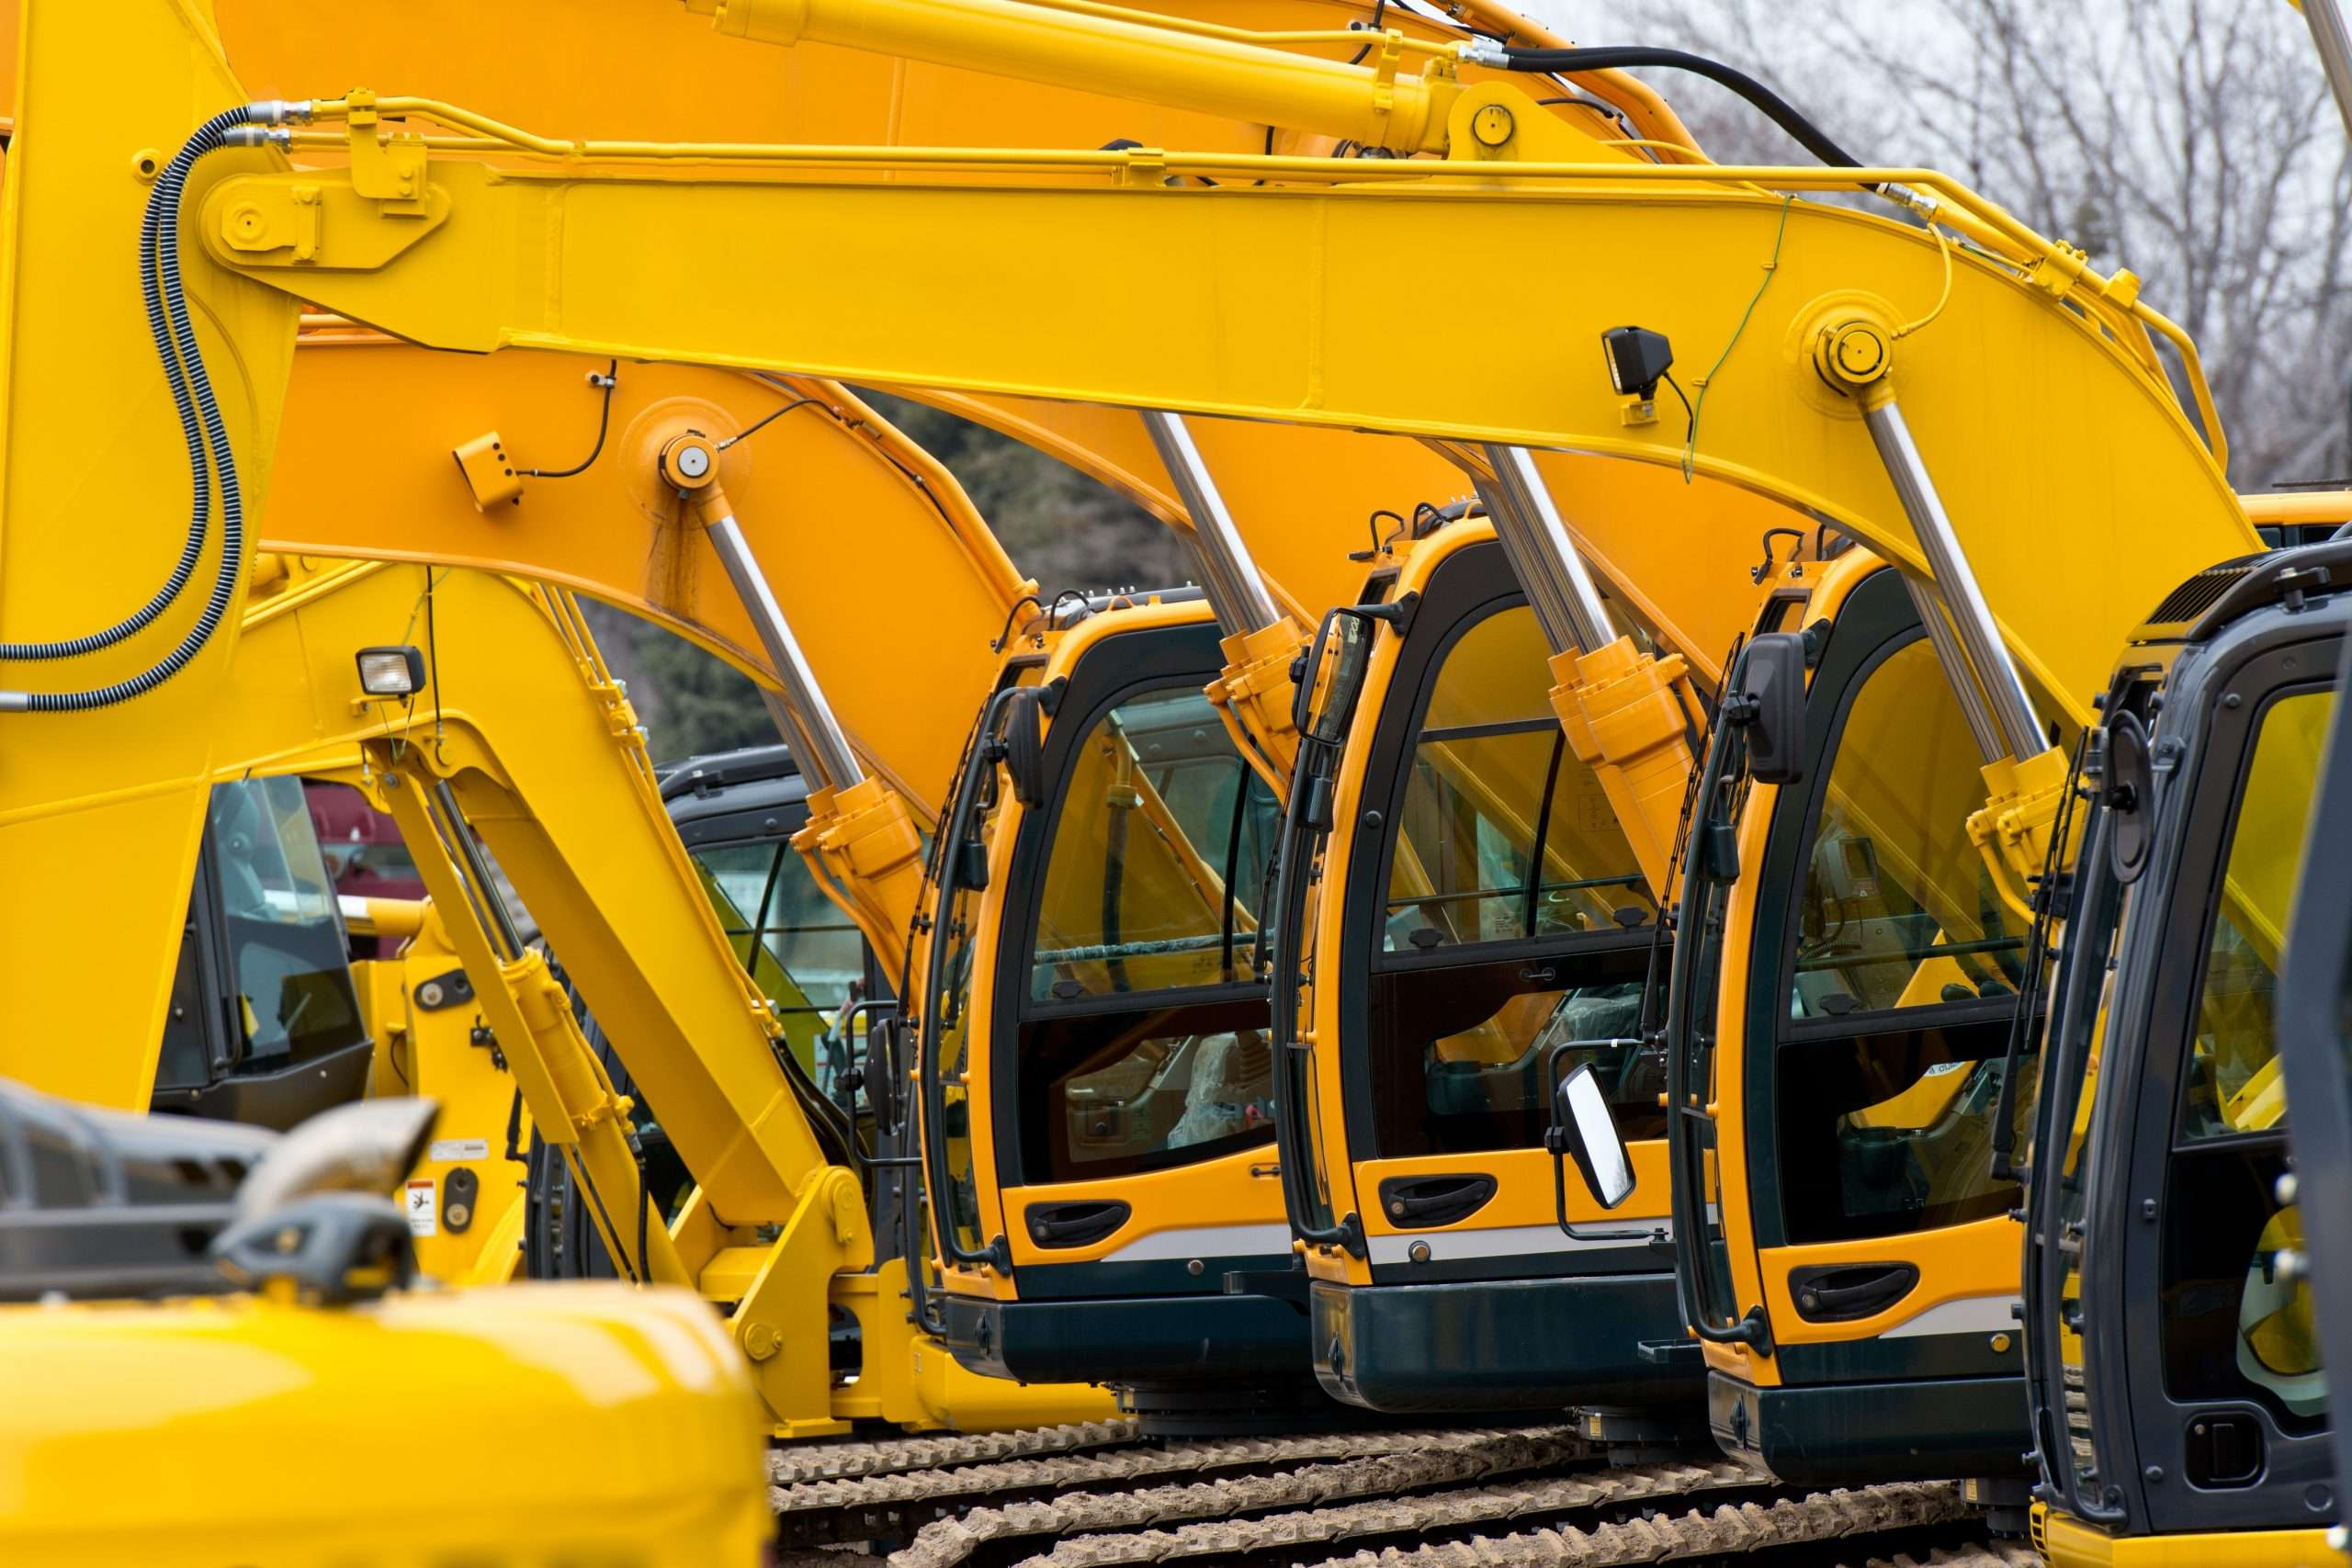 Multiple excavators in a row are an example of the assets a business can borrow against.